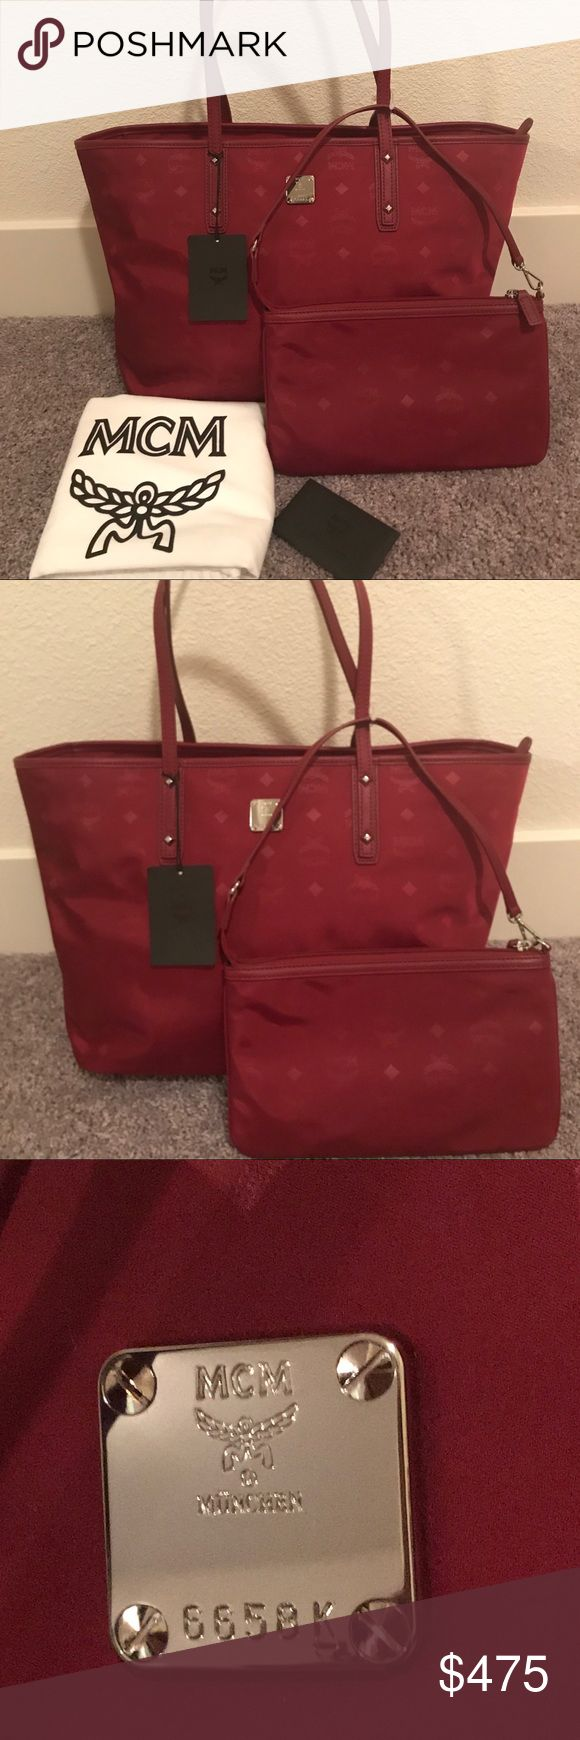 NEW MCM Medium Anya Nylon Tote Brand New MCM Anya Tote in Ruby Red Color!!!!  Perfect for everyday bag. It has top zip closure and a detachable zip pouch. This bag is Nylon with leather trim.  Retail Price $495 plus tax MCM Bags Totes